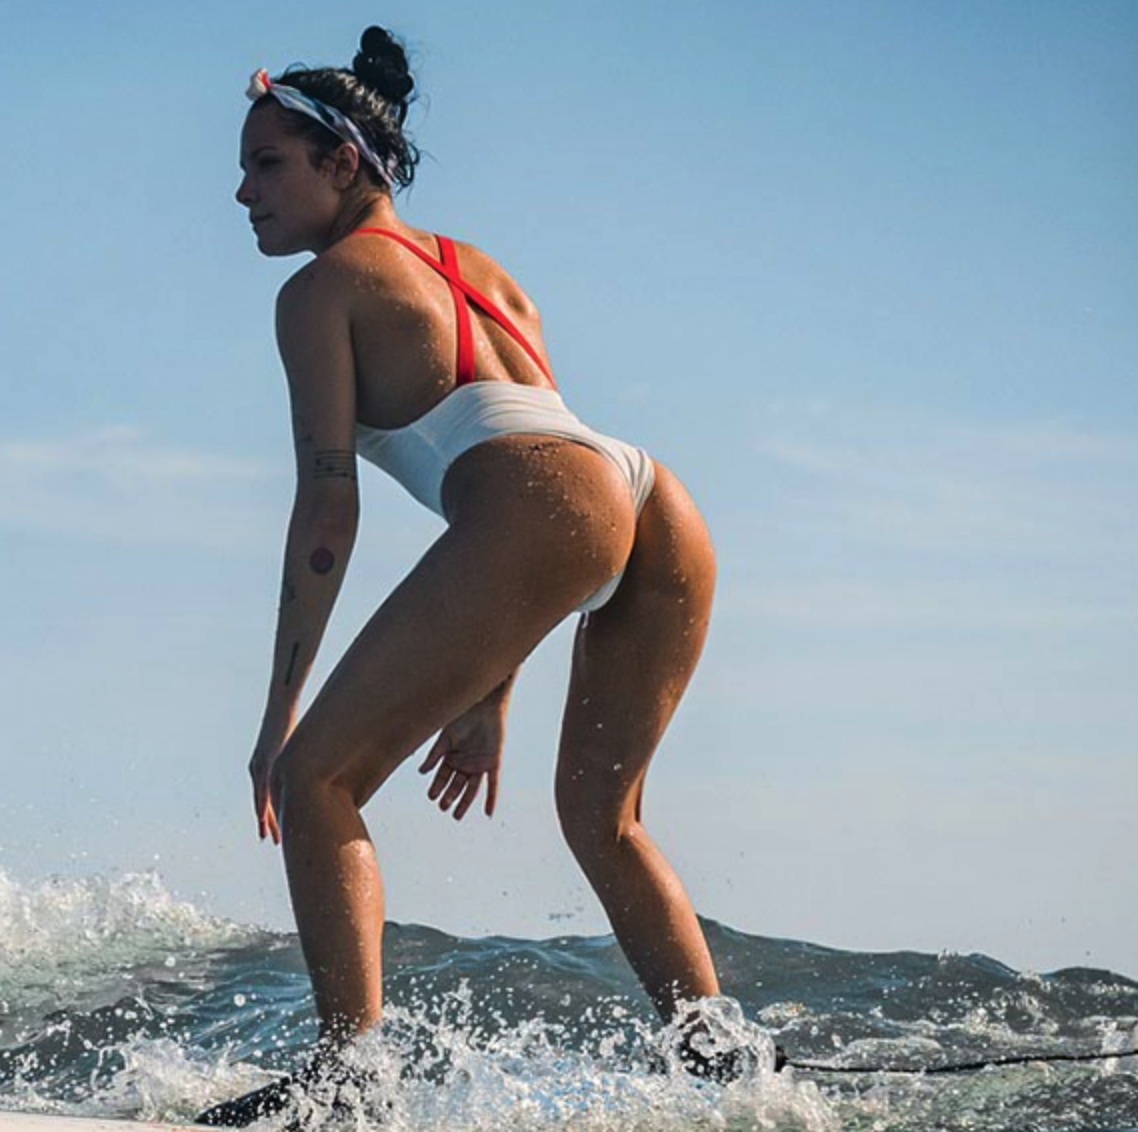 Halsey Busts Out Her Awesome Booty on a Surfboard [SFW PICS]